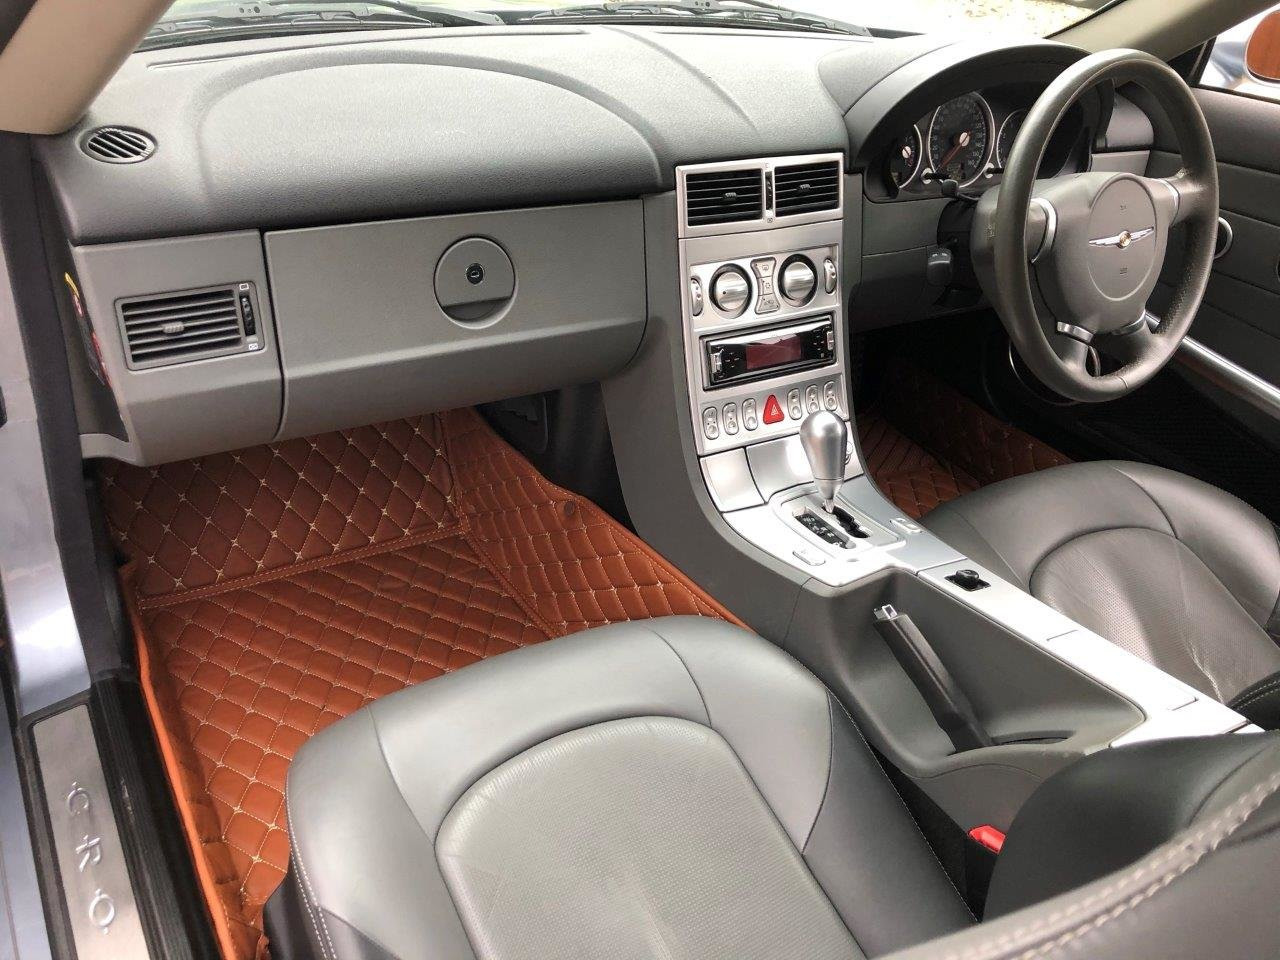 2003 Chrysler Crossfire 3.2i V6 Coupe 5-Speed Automatic SOLD (picture 7 of 12)